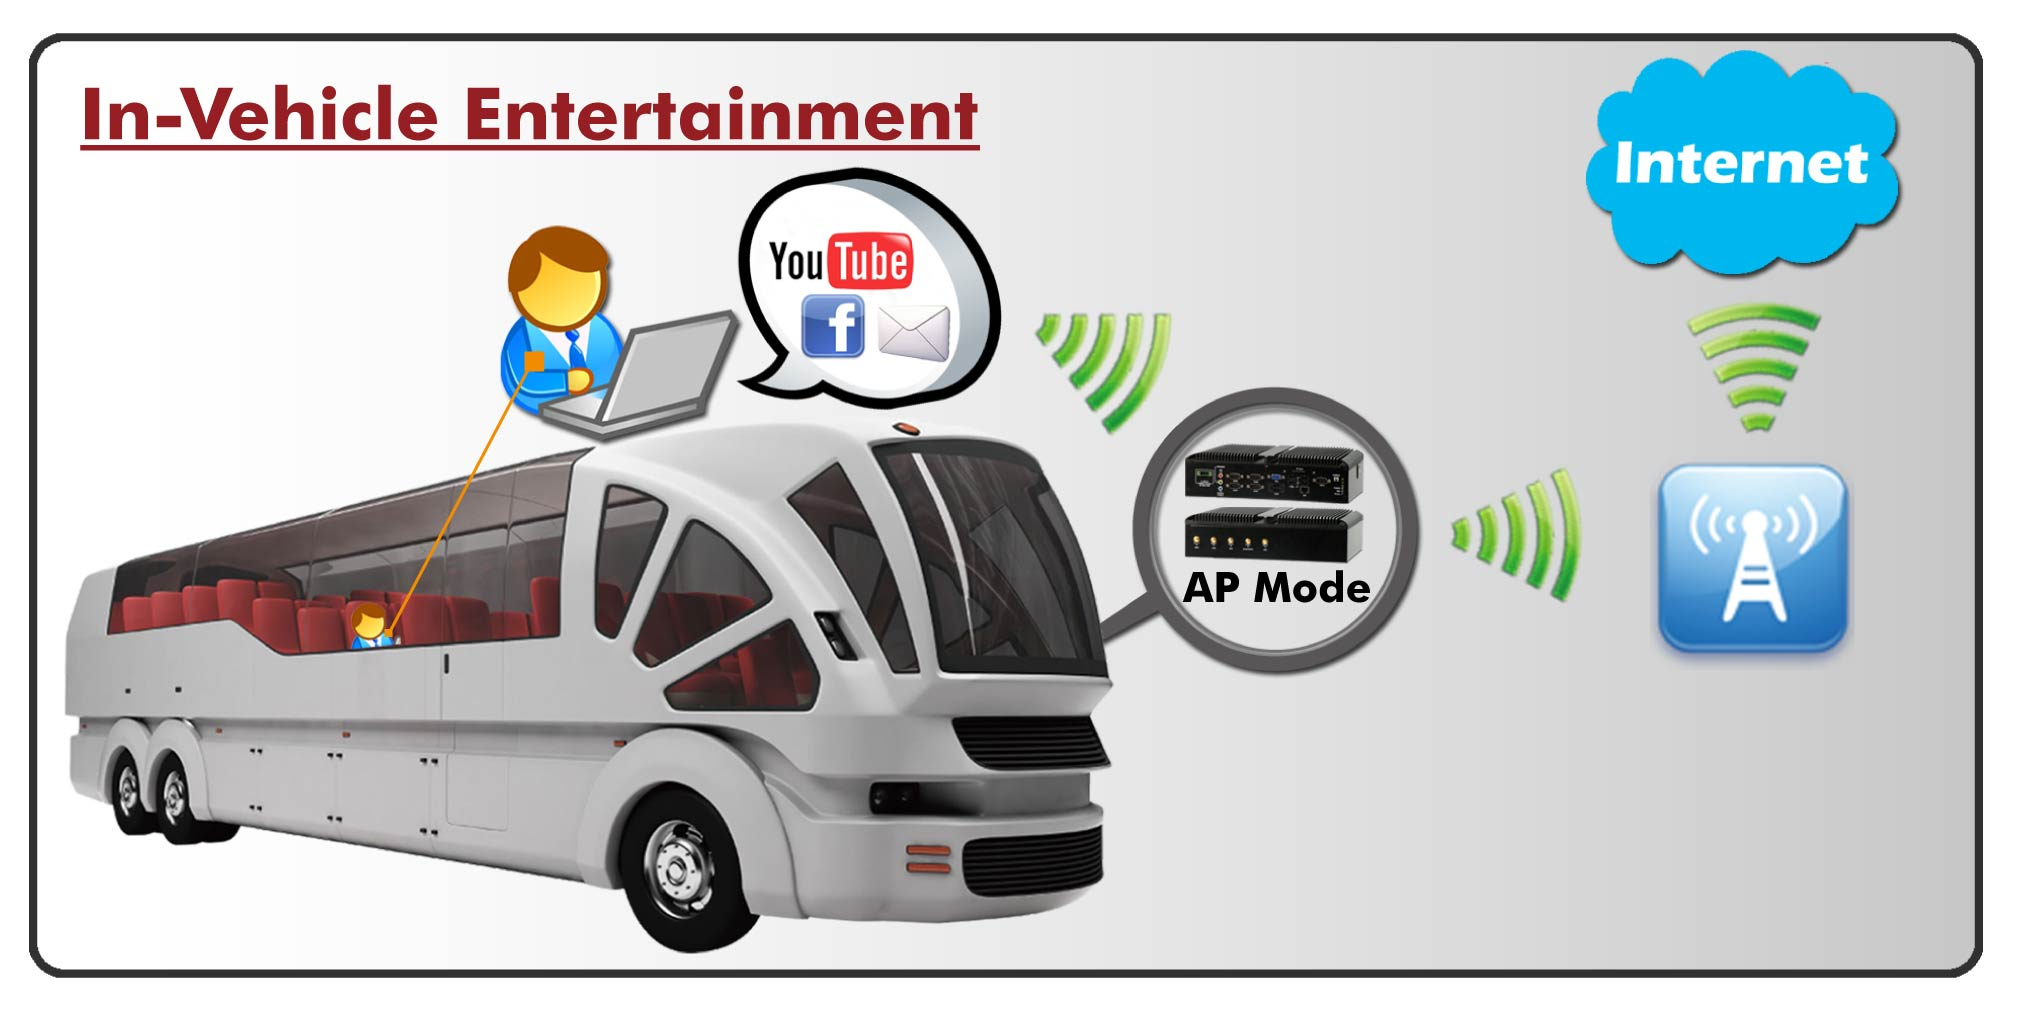 Wi-Fi AP Mode Solution for In-Vehicle Computer